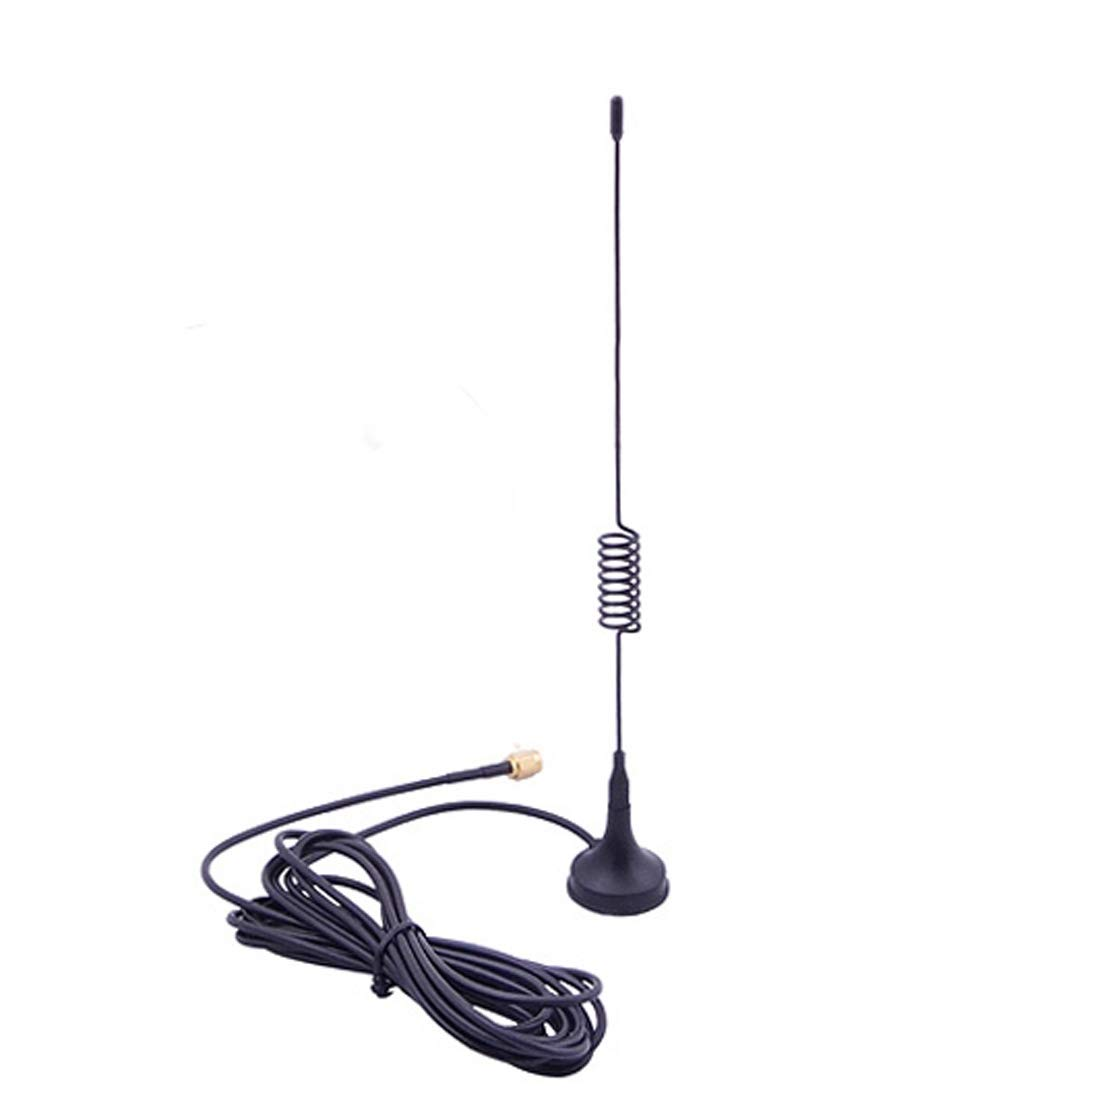 Black Cable Length: 3m Color : Black RP-SMA Network Antenna JHM Computer Networking WiFi Antenna SMA 900//1800MHz Suction Cup GSM Antenna